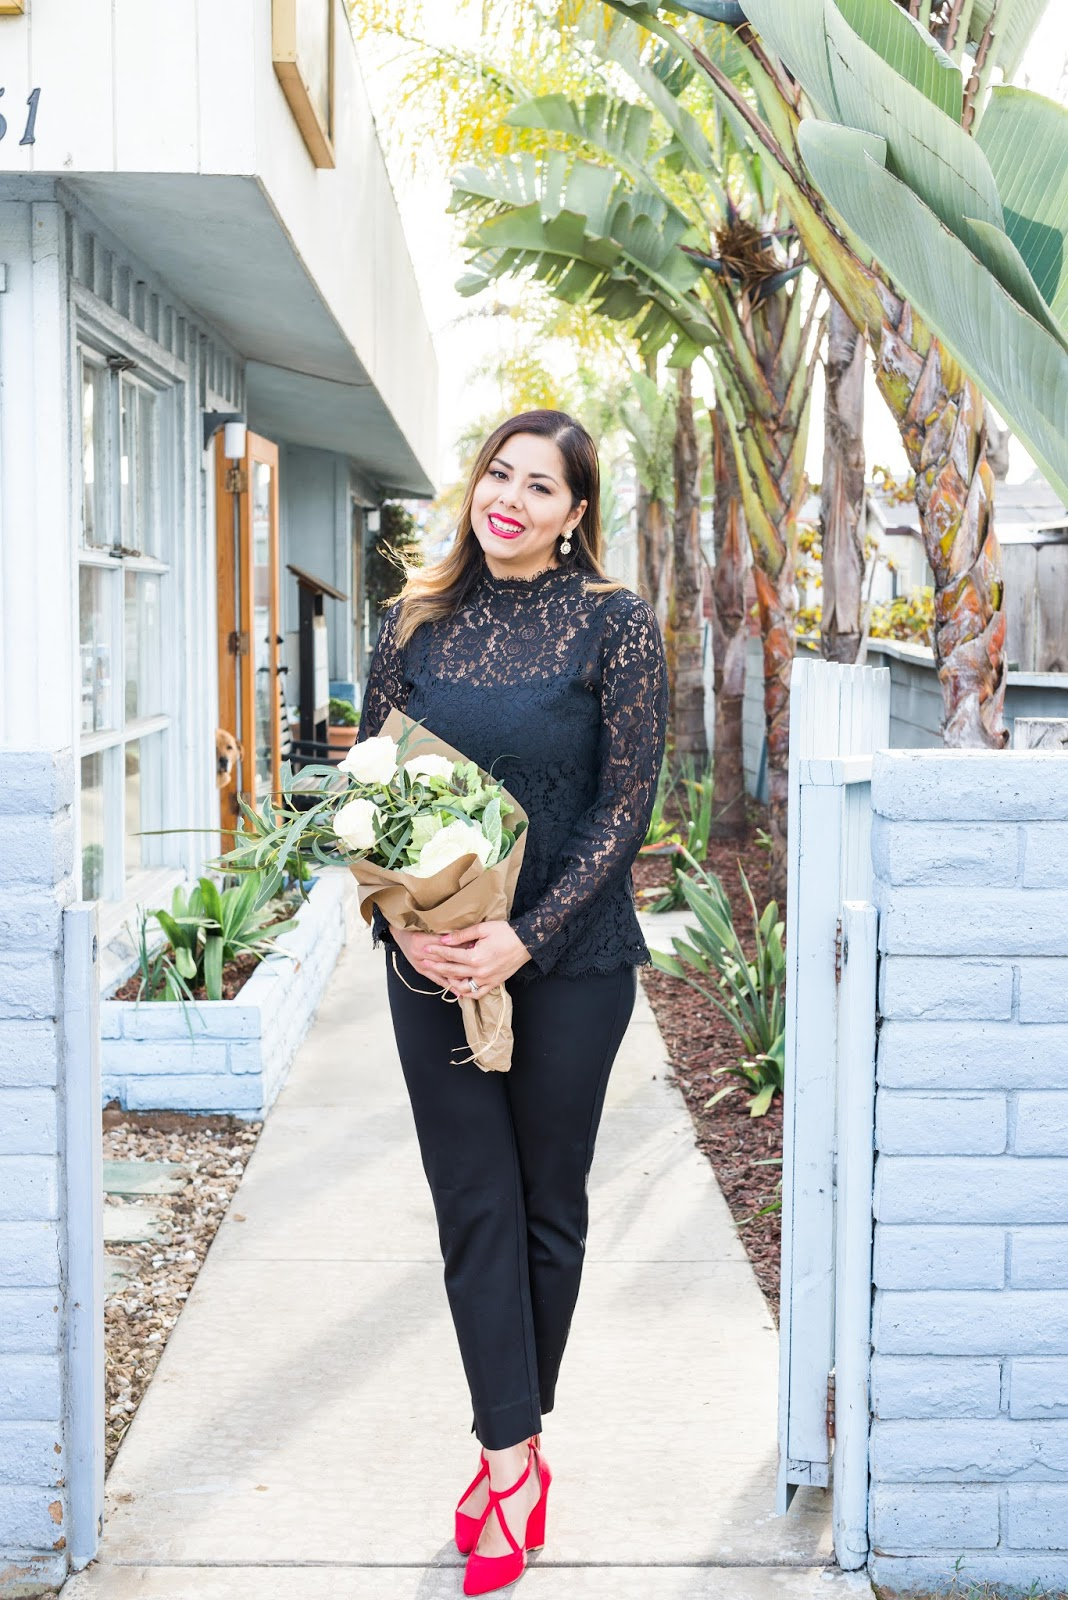 Black Lace Valentines Outfit, red statement shoes, black lace peplum top, how to wear black for valentine's day